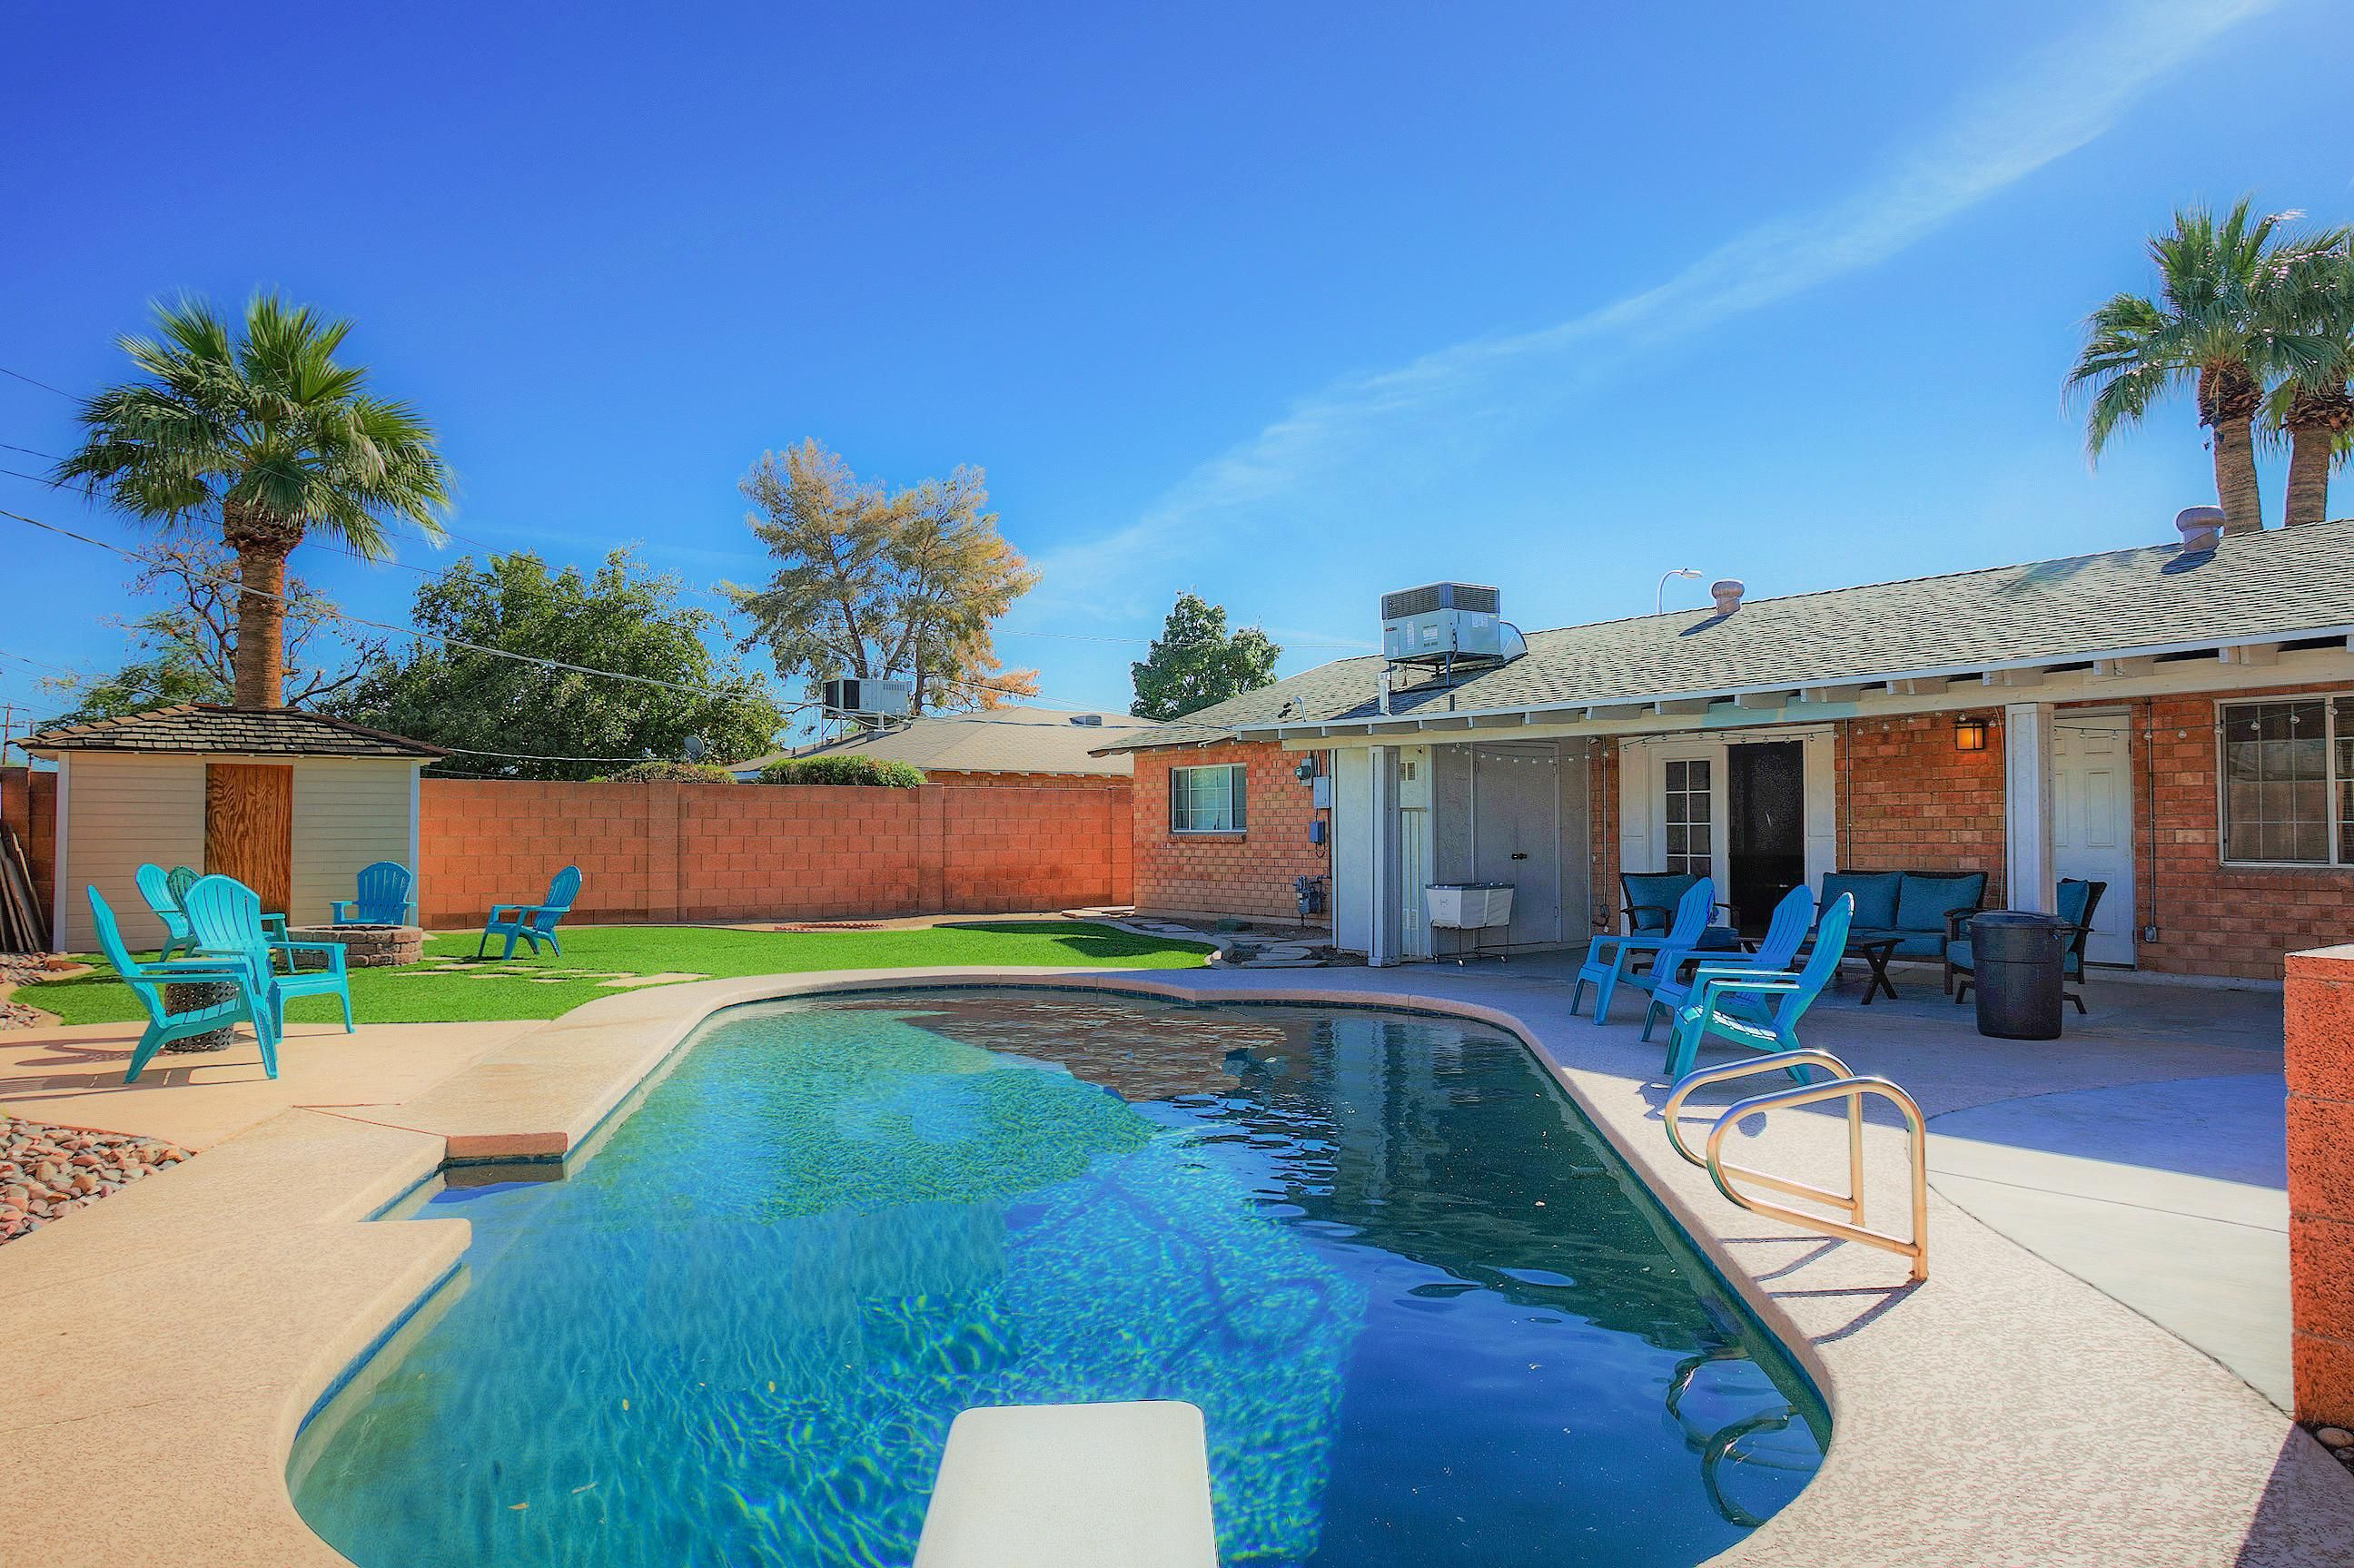 Welcome to Old Town Scottsdale! Take a refreshing dip in the private pool.